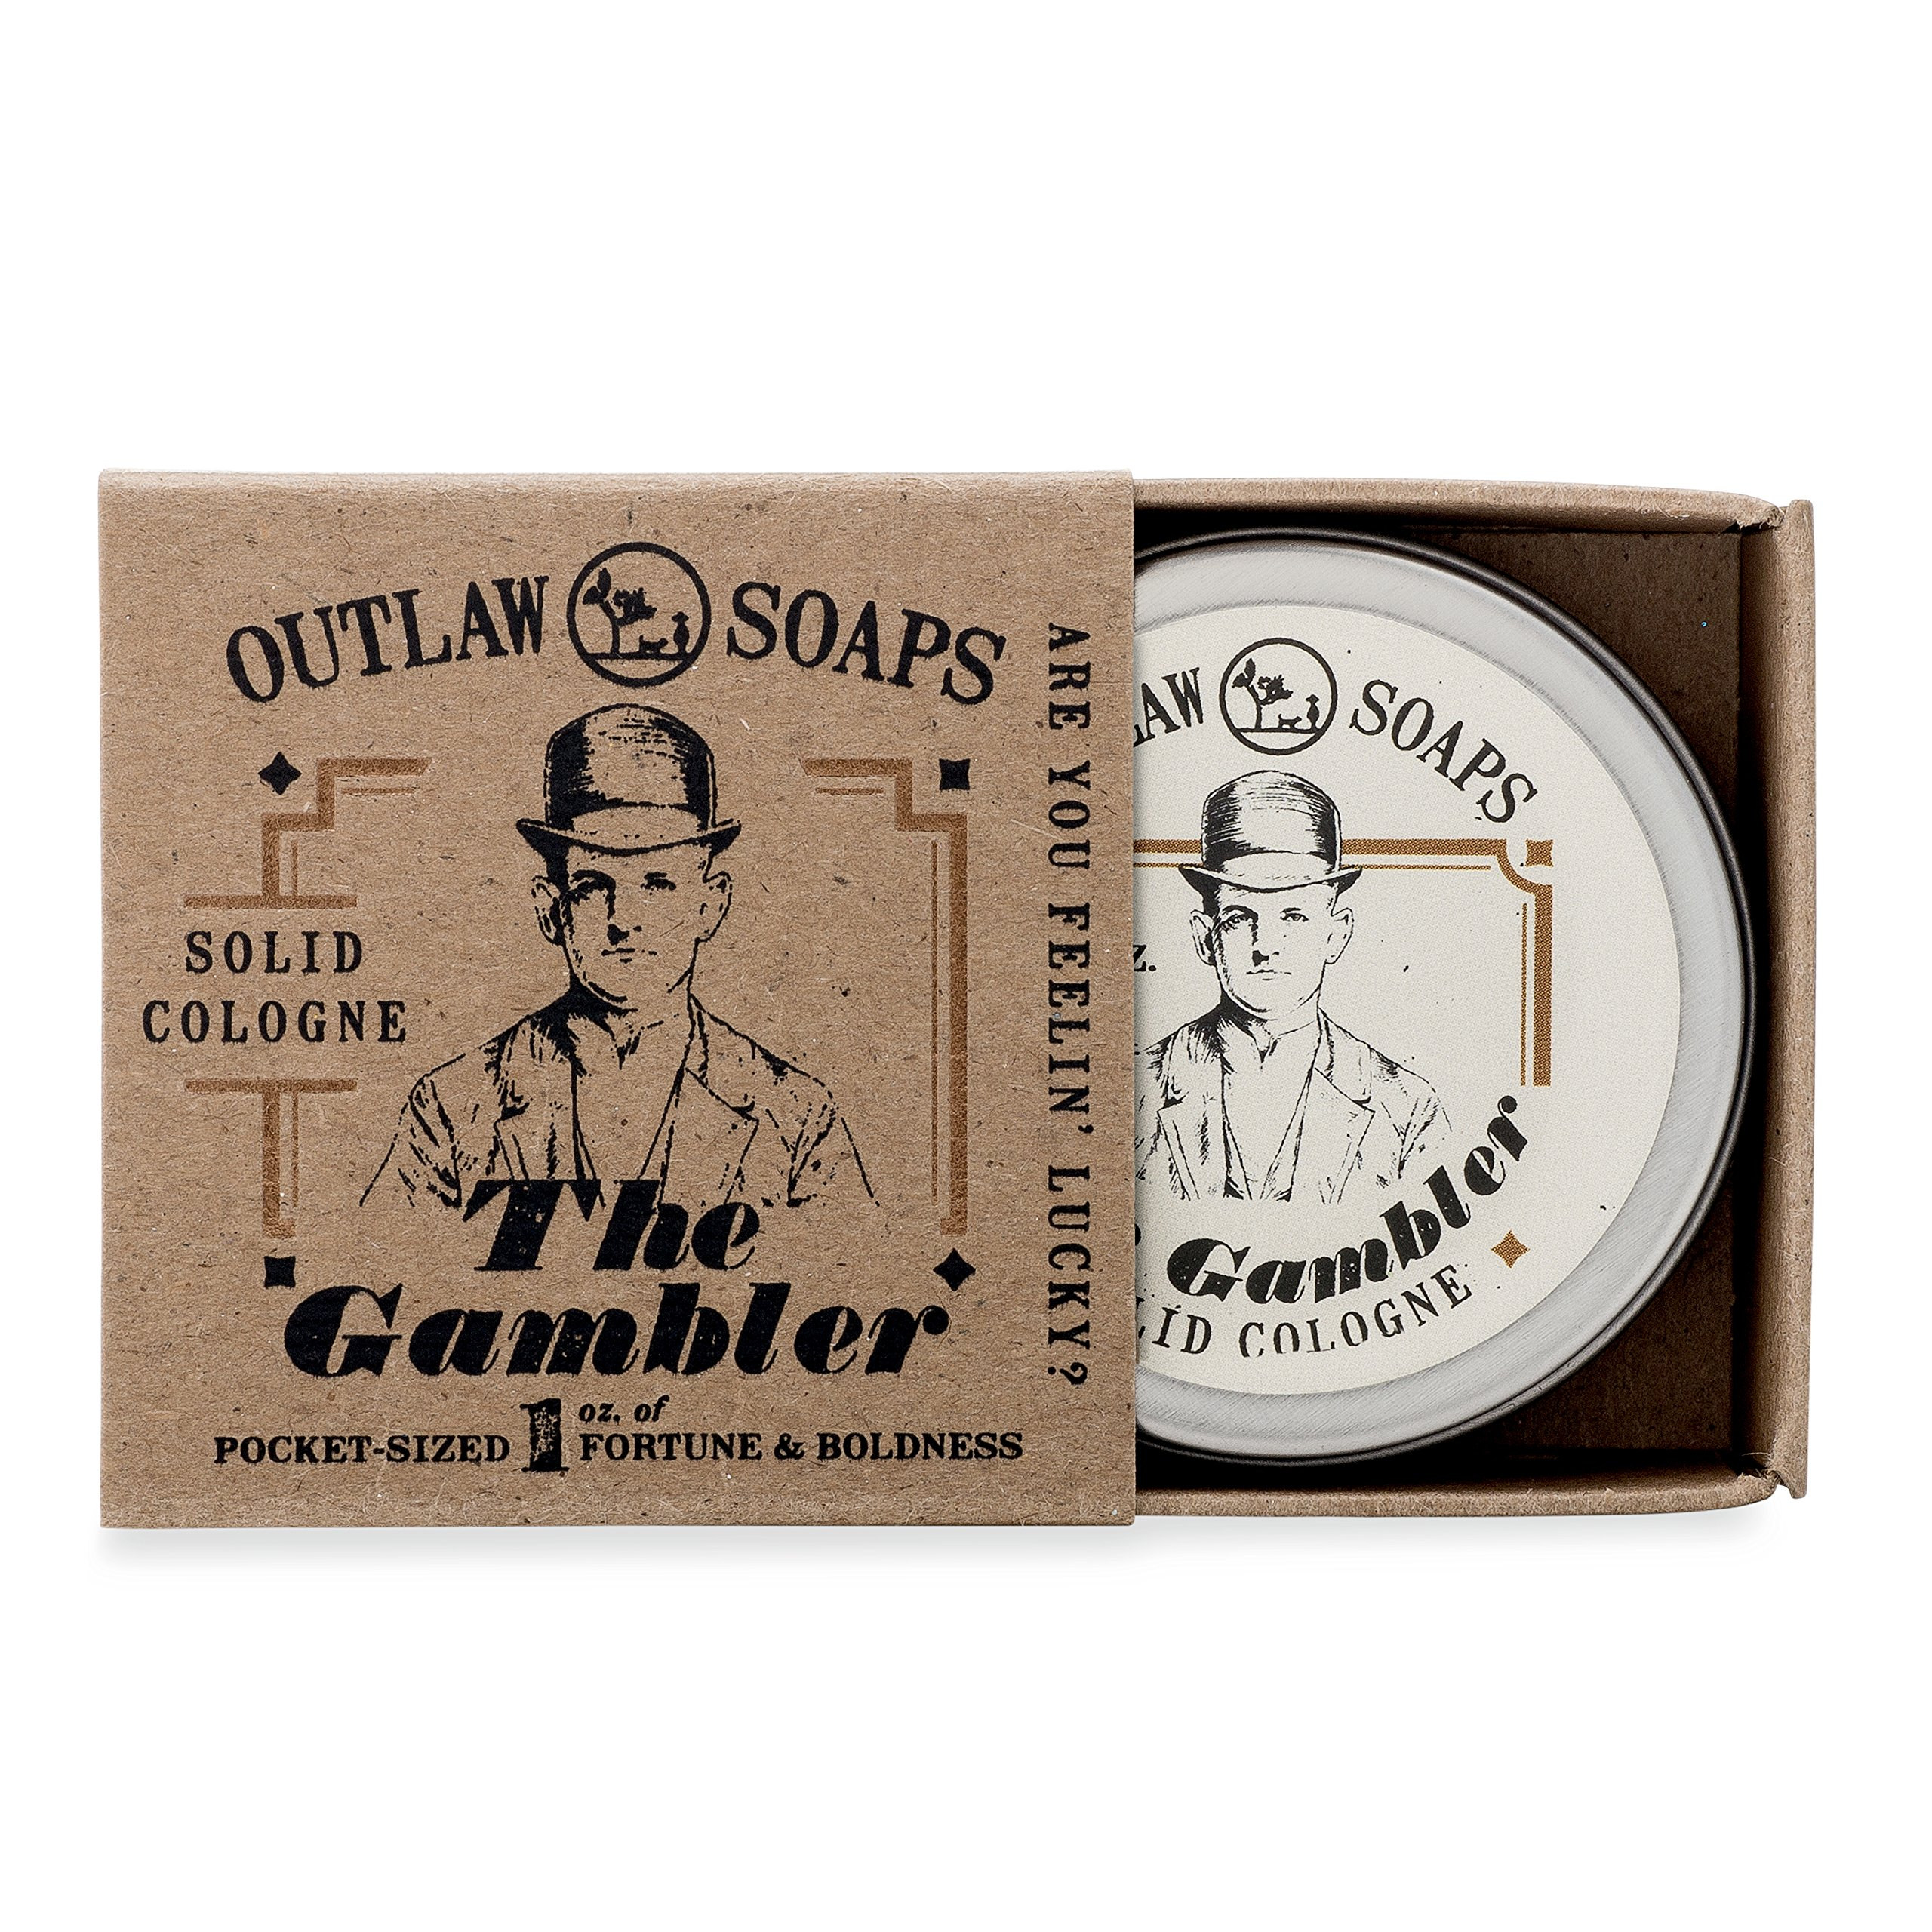 The Gambler Bourbon-inspired Solid Cologne - Smells like fortune and boldness - 1 oz - The warm smell of whiskey and tobacco, finished with a hint of leather - Men's or Women's Cologne